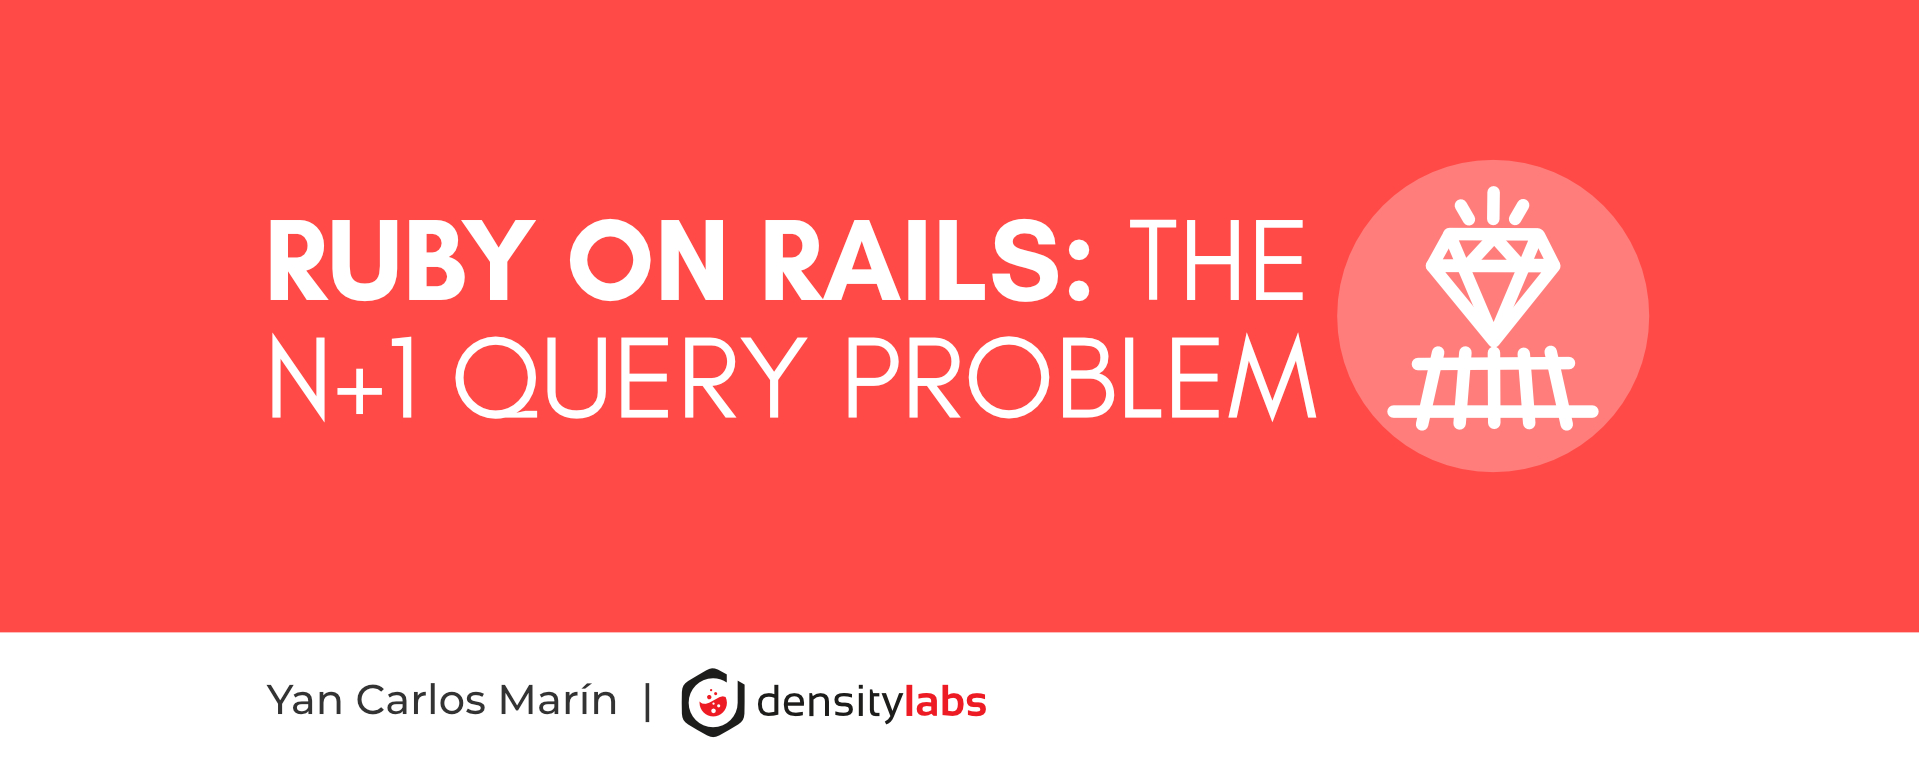 Ruby on Rails: The N+1 query problem